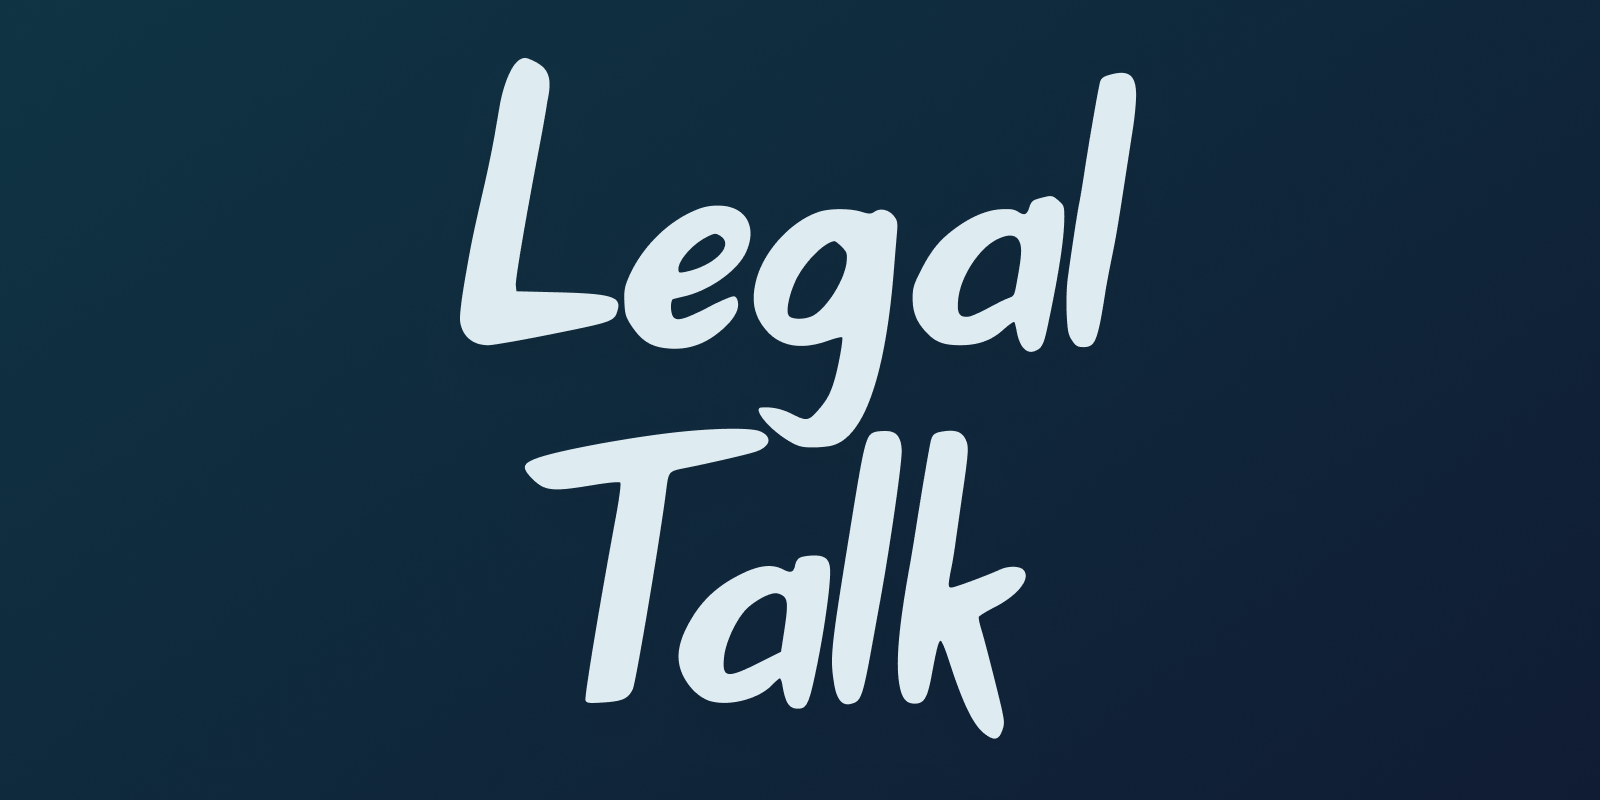 Roskomsvoboda. Legal talk